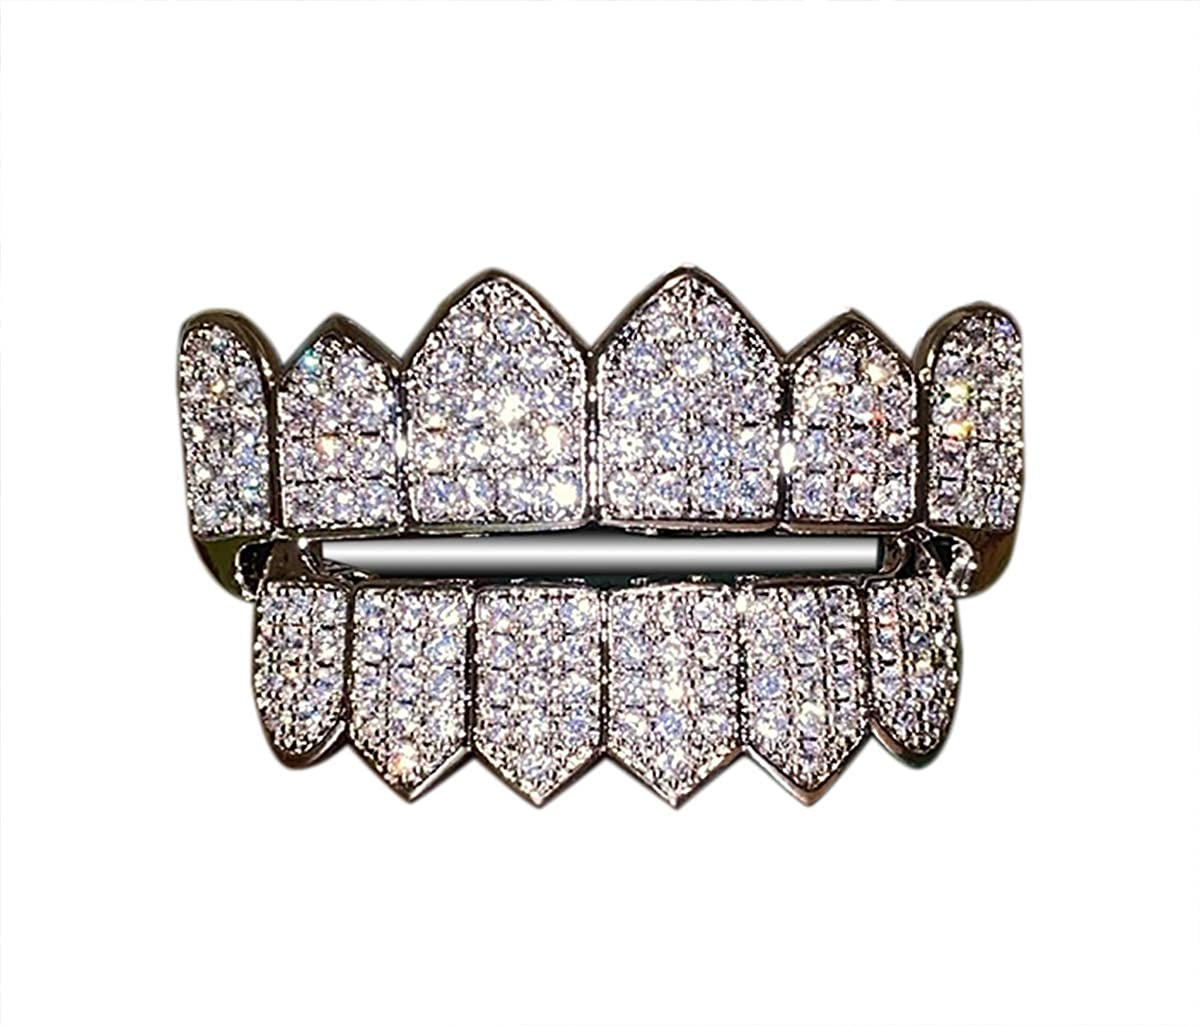 Shop-iGold Joker White Gold Grillz Finish for Mouth Top Bottom Hip Hop Teeth Grills for Mouth Grillz for Mouth Top Bottom Hip Hop 6 Grills for Teeth Mouth Set - Teeth Cap, Iced Grillz